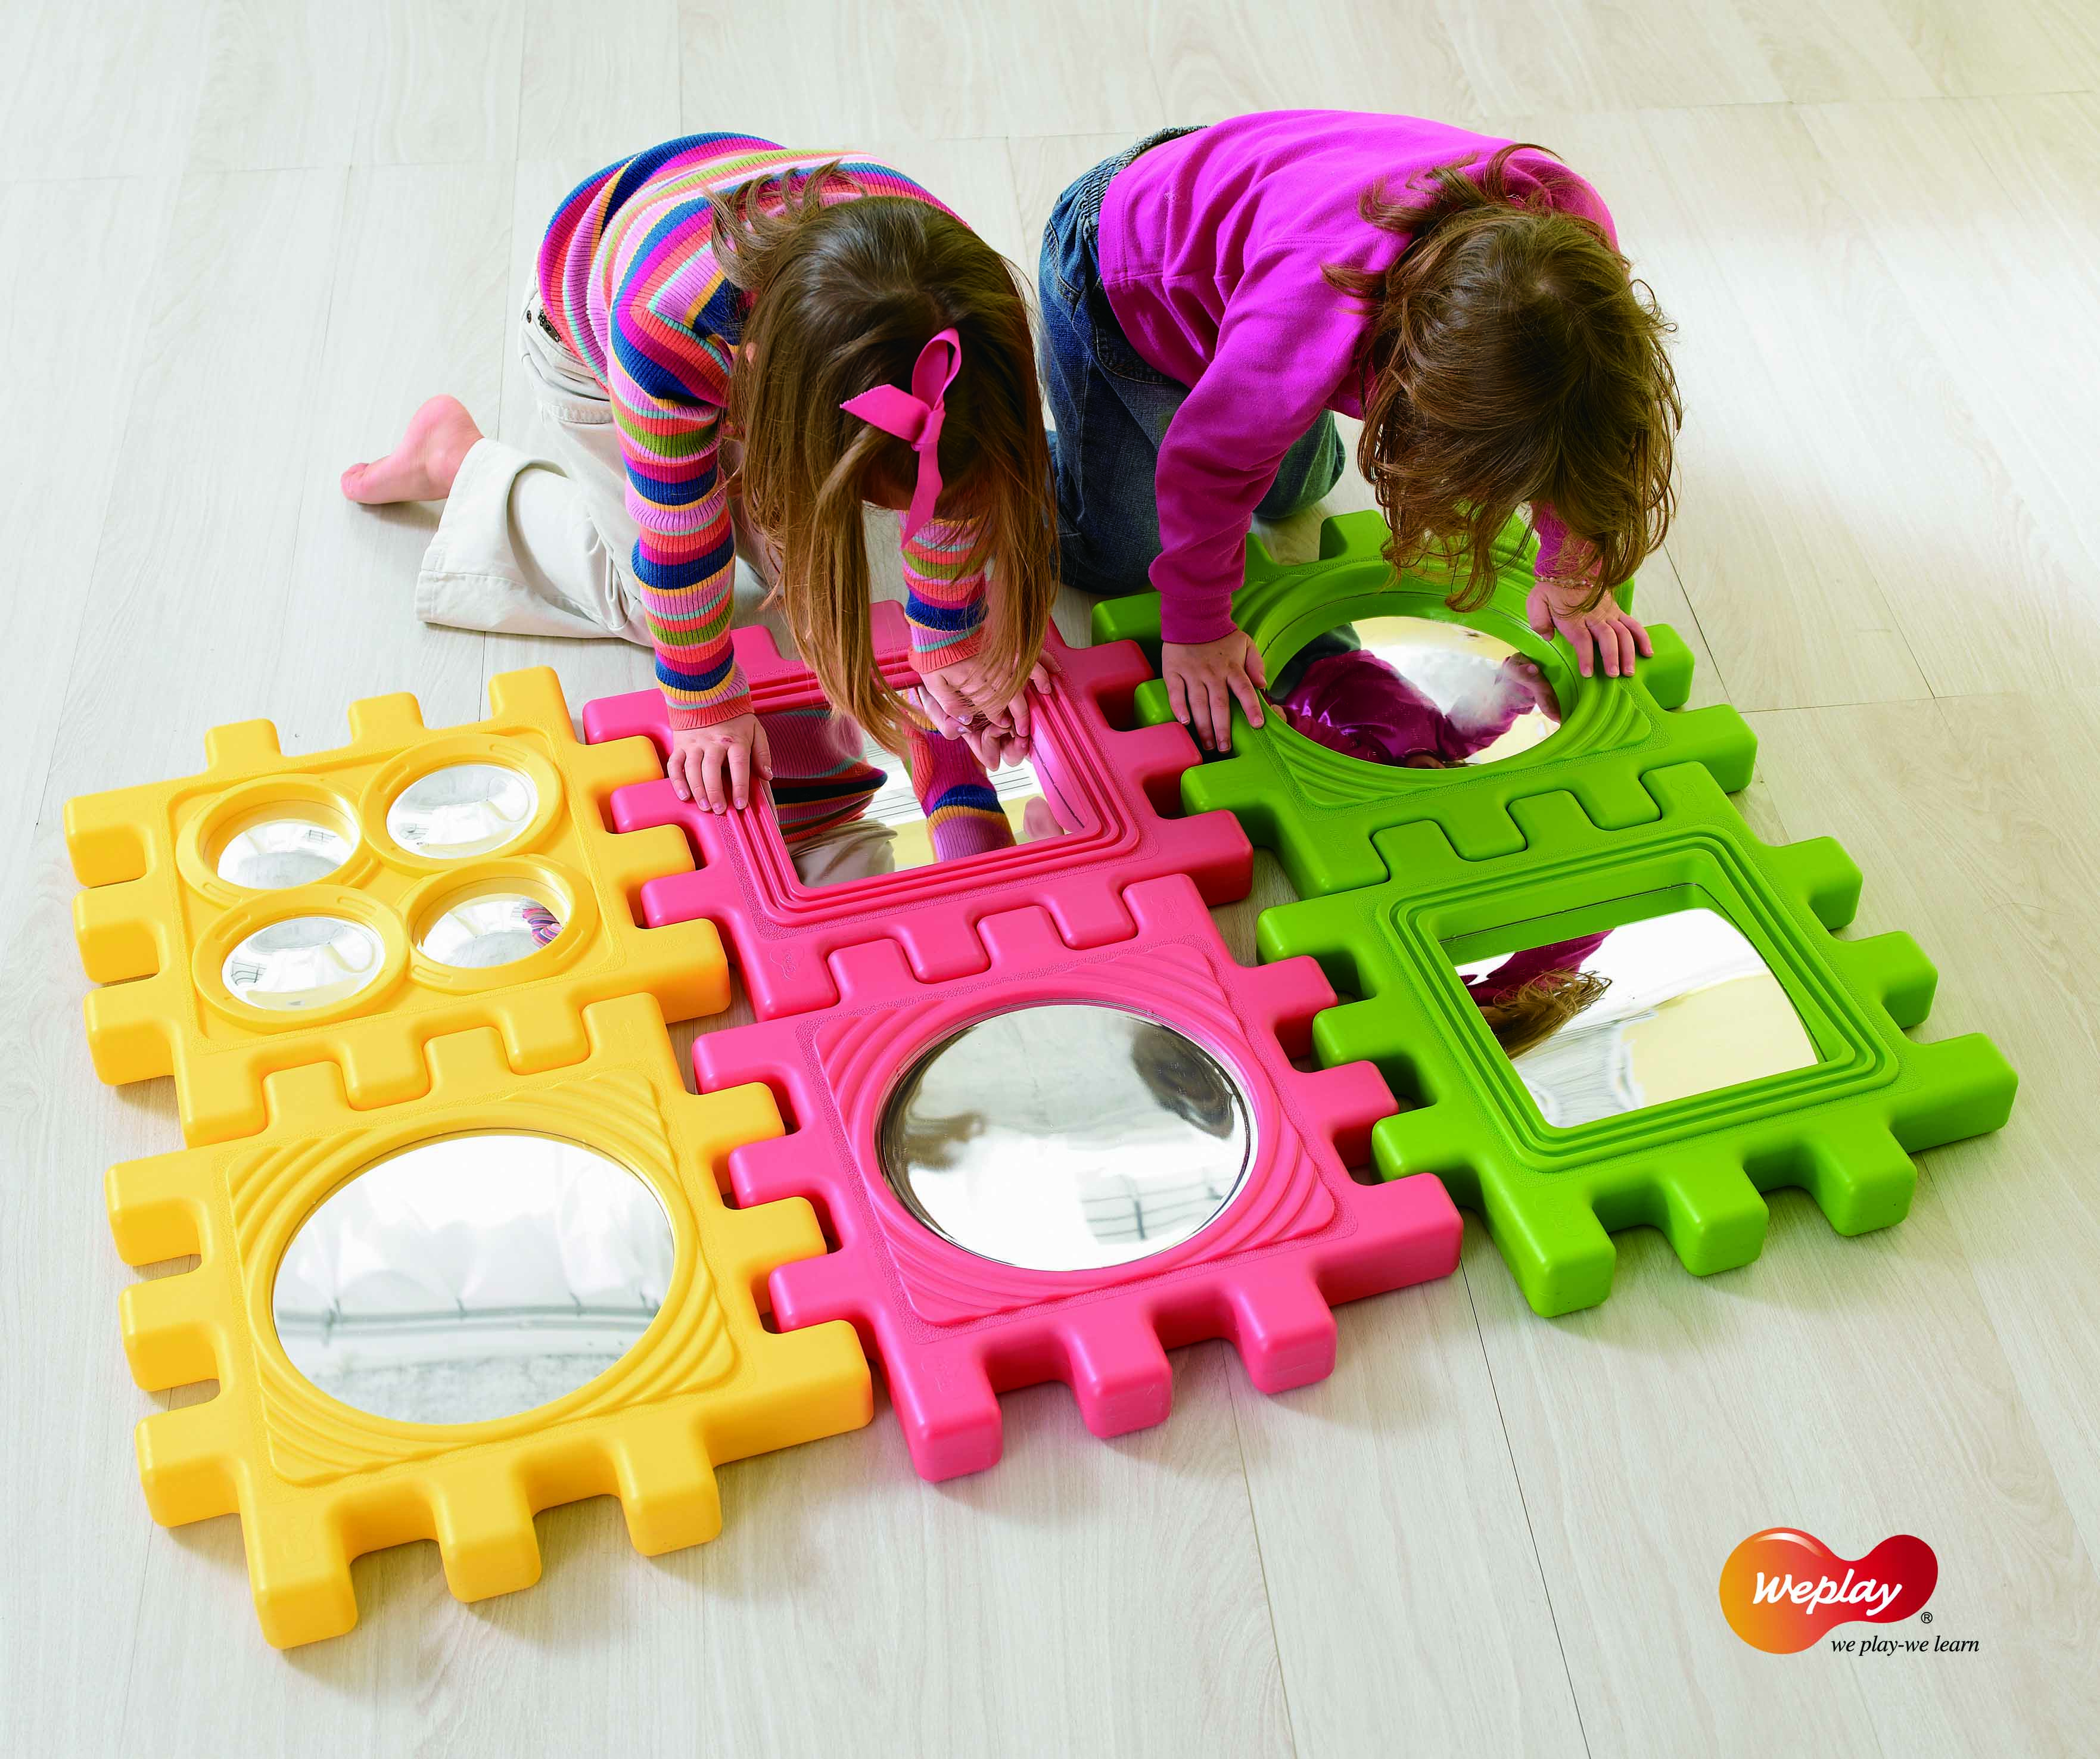 Weplay Reflector Cube Best Educational Infant Toys